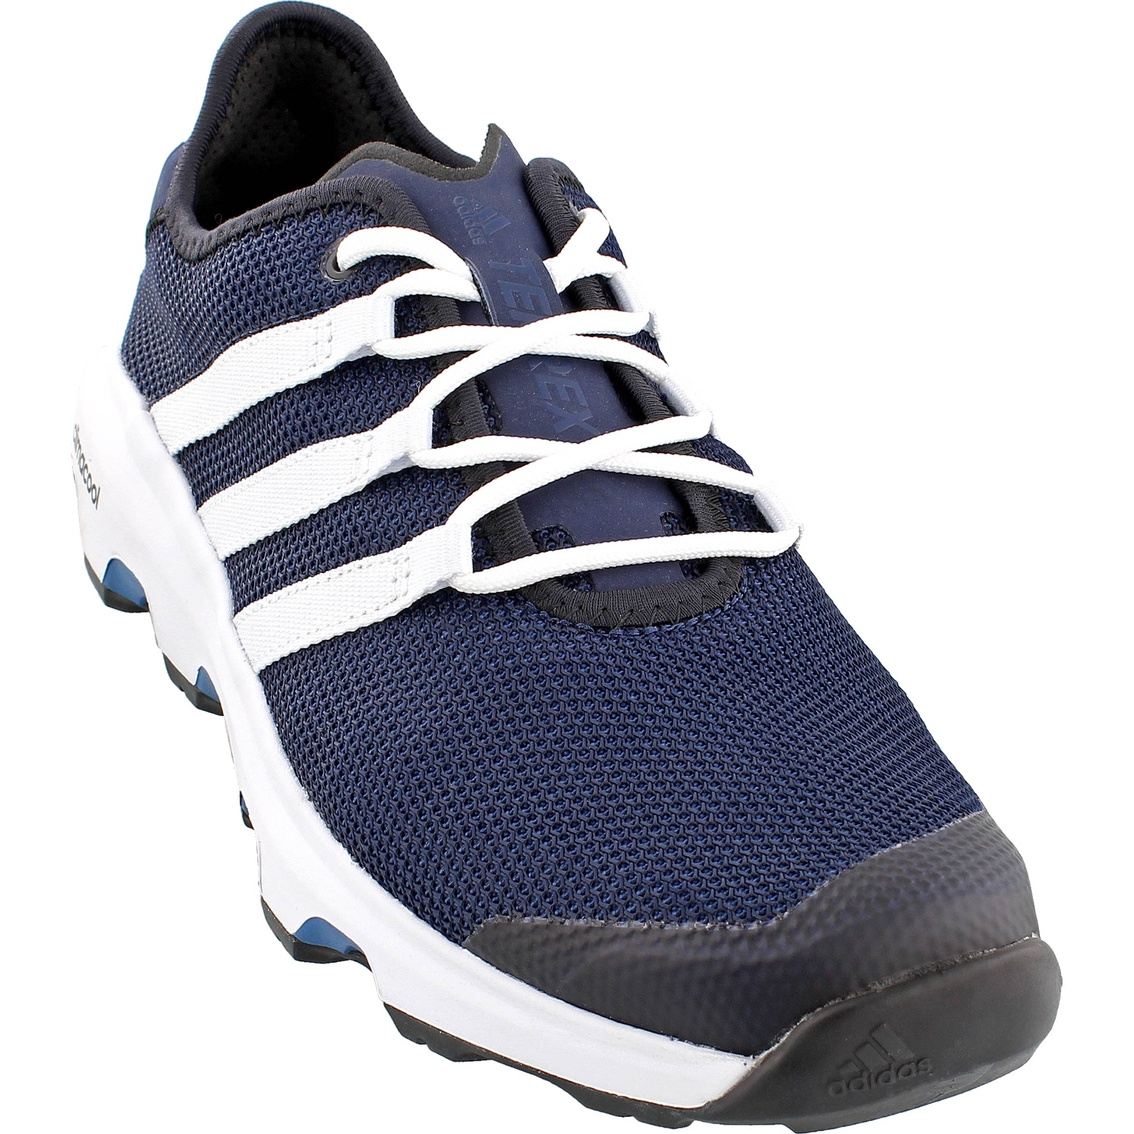 timeless design a38c1 c2871 Adidas Outdoor Men's Terrex Climacool Voyager Hiking Shoes ...